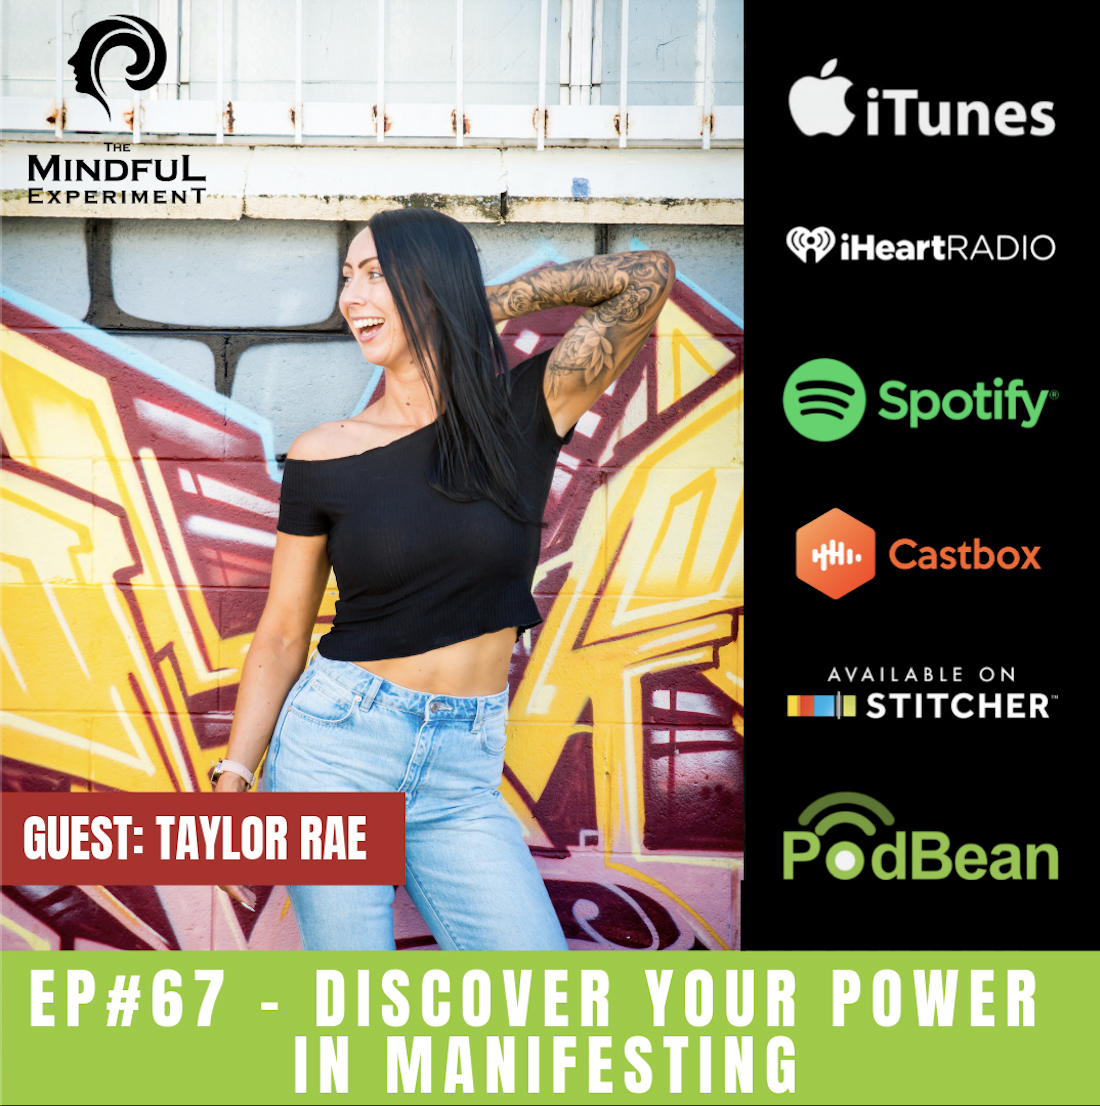 EP#67 - Discover Your Power in Manifesting